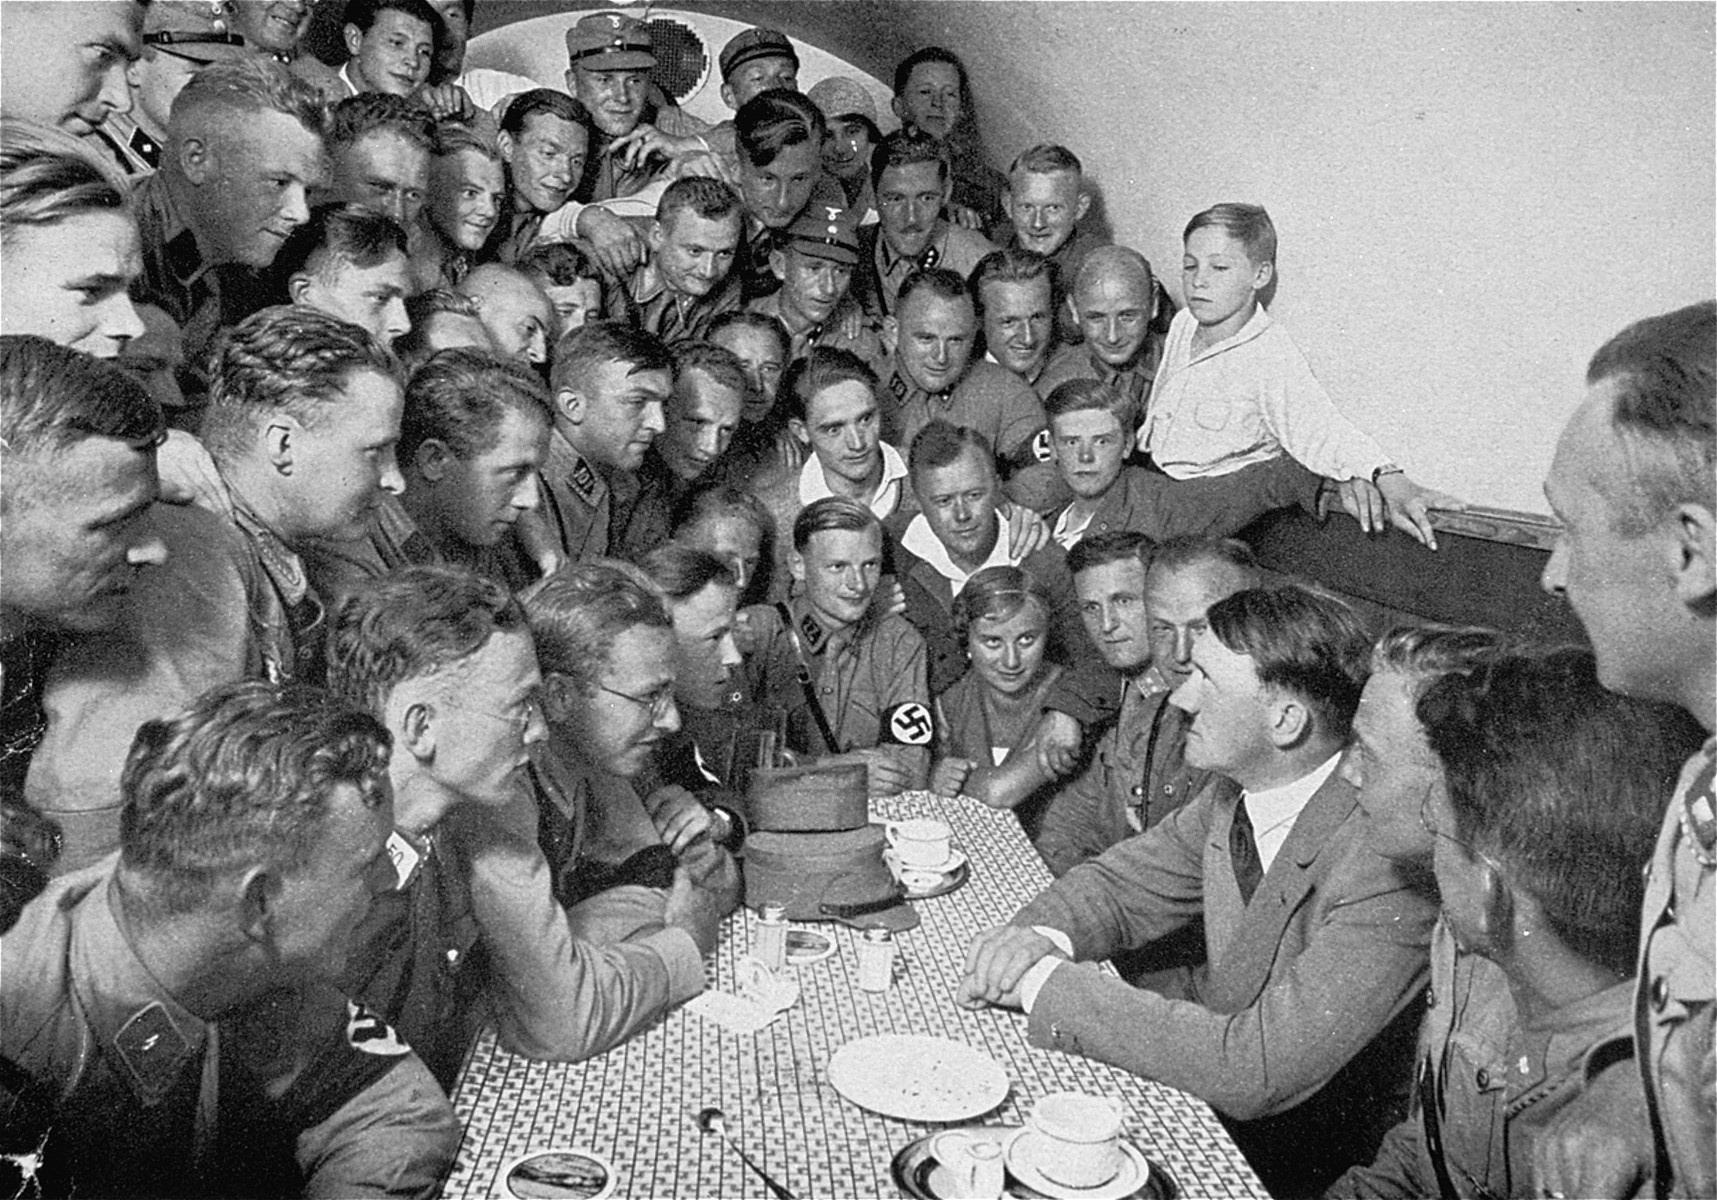 Adolf Hitler speaks to a group of enthralled followers in the basement canteen of the Munich Brown House, a hostel for SA men.